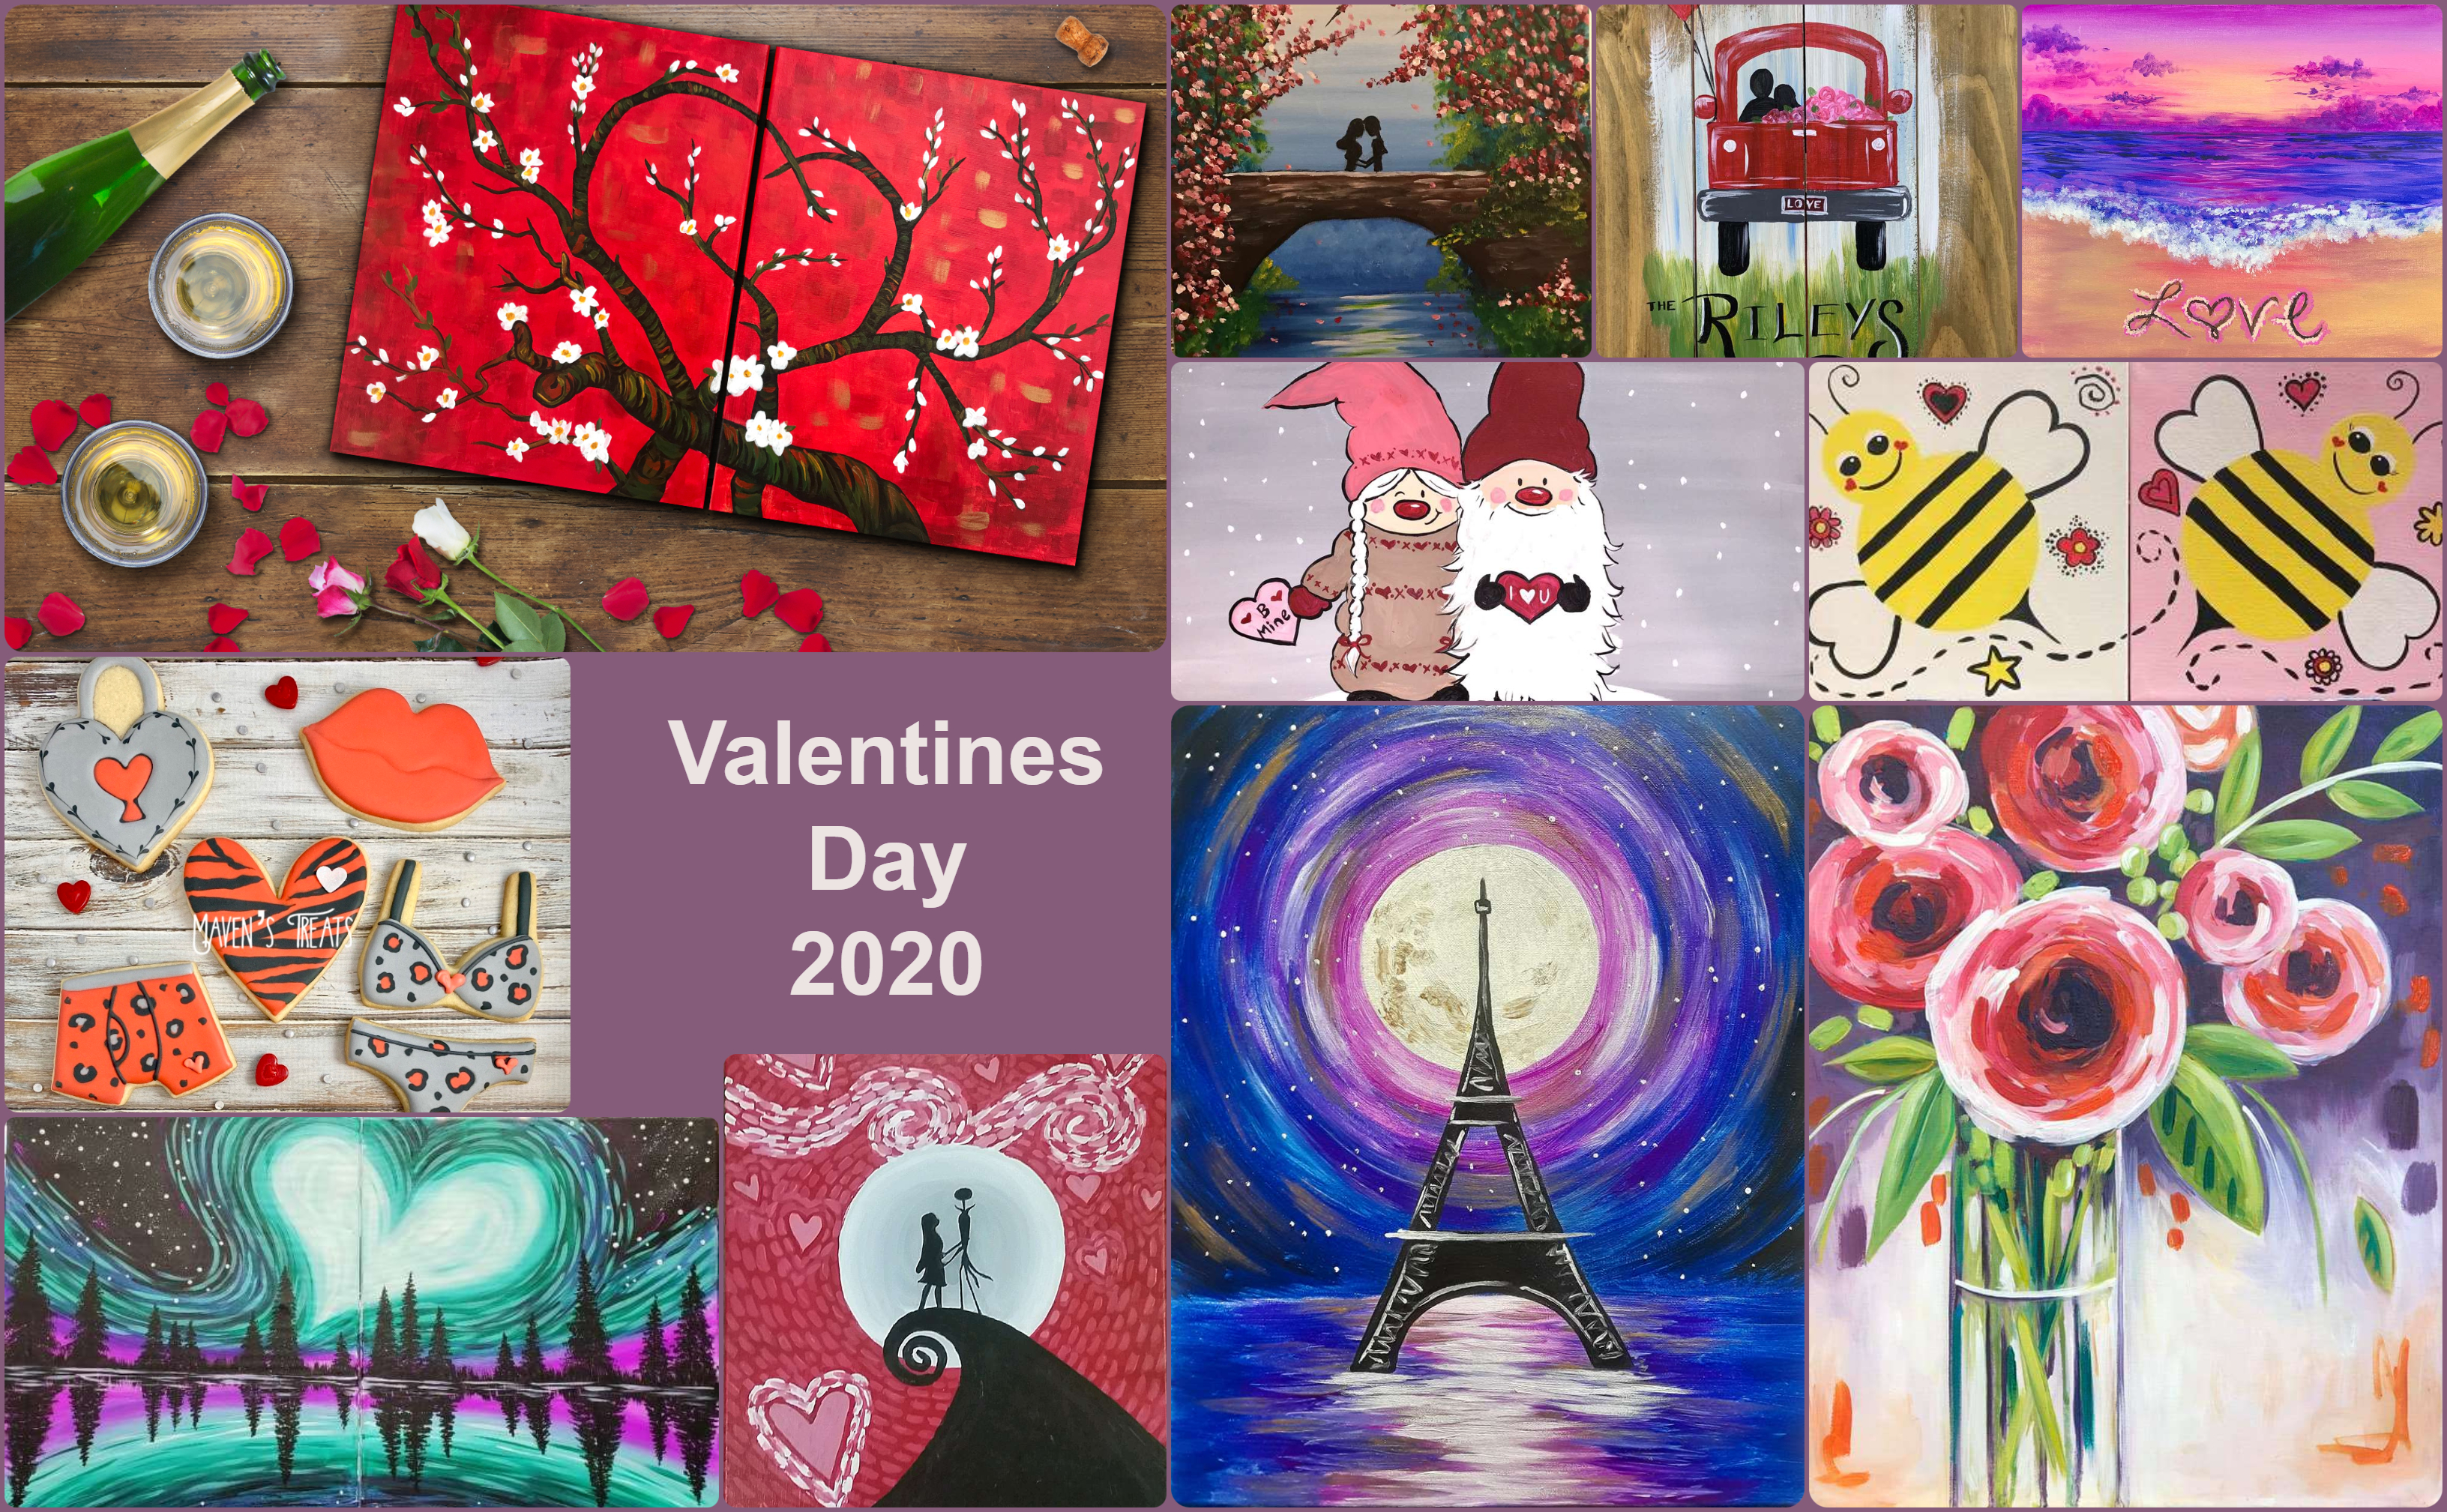 Valentine's Day Events at Pinot's Palette